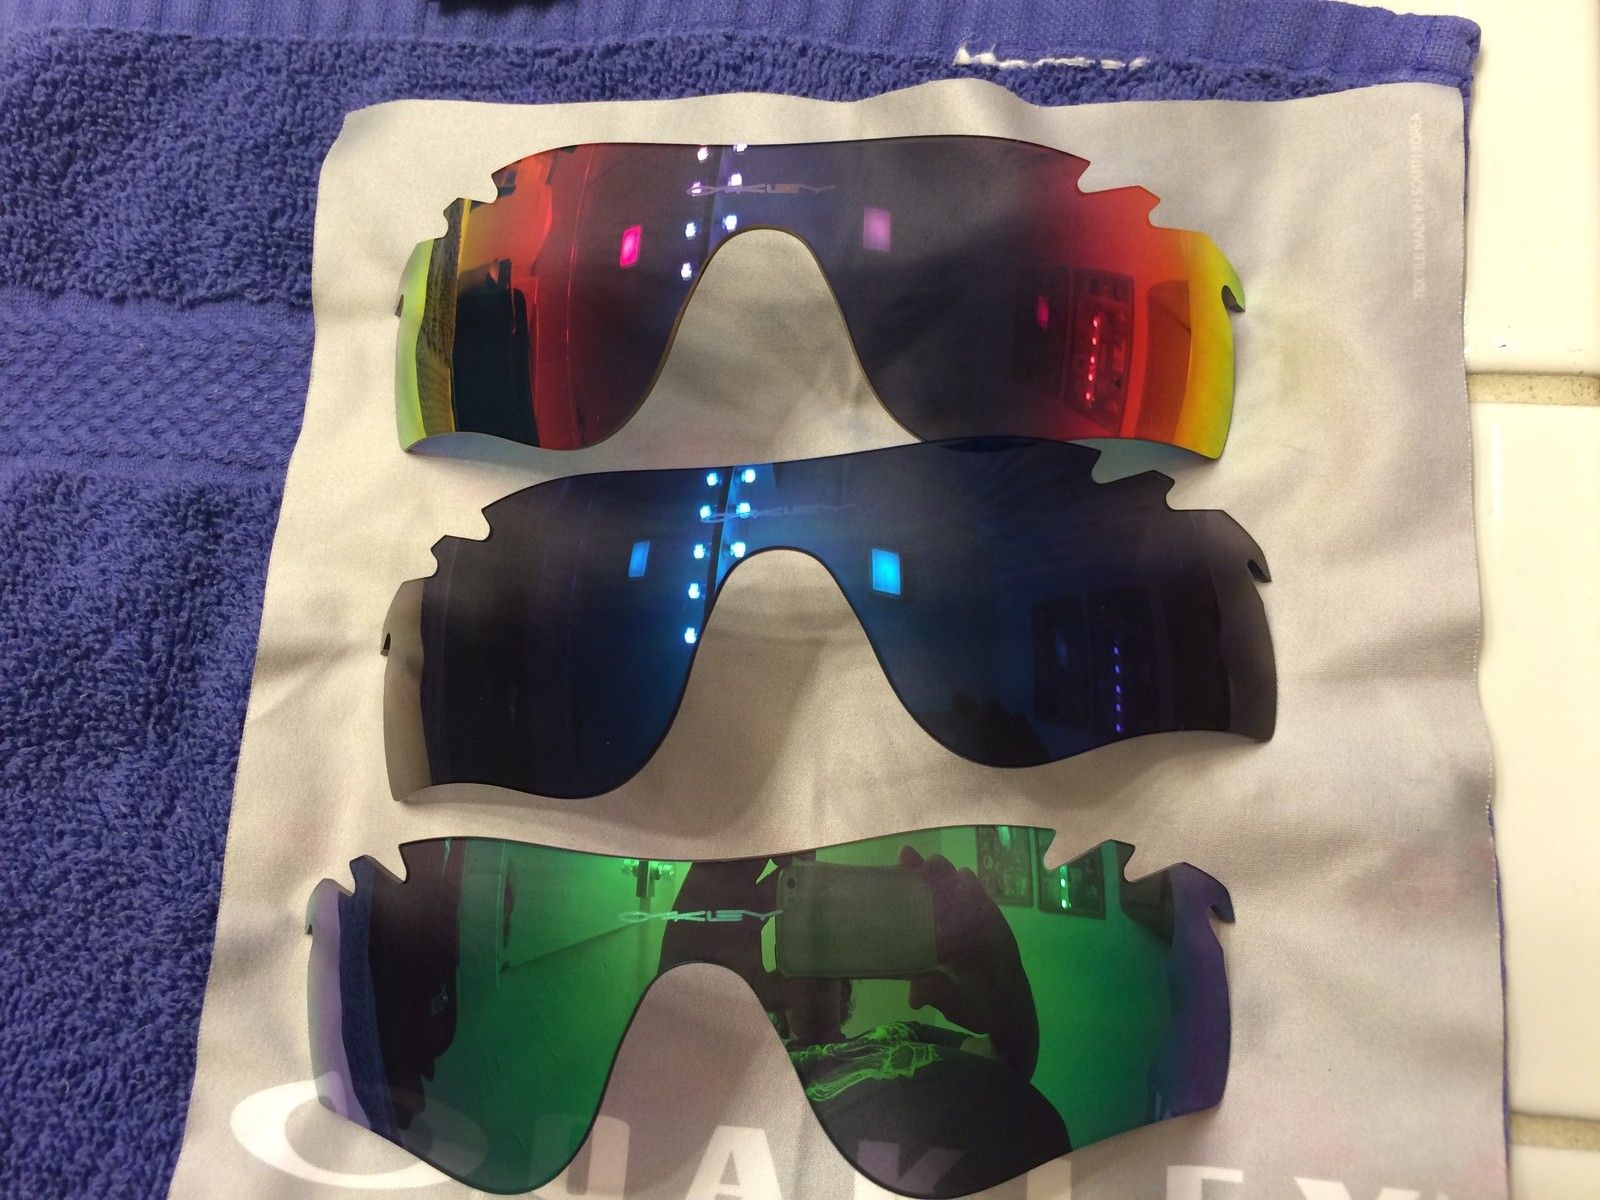 RadarLock Lenses - 3 for under $99 - NEW - 2015-06-27 19.16.40.jpg